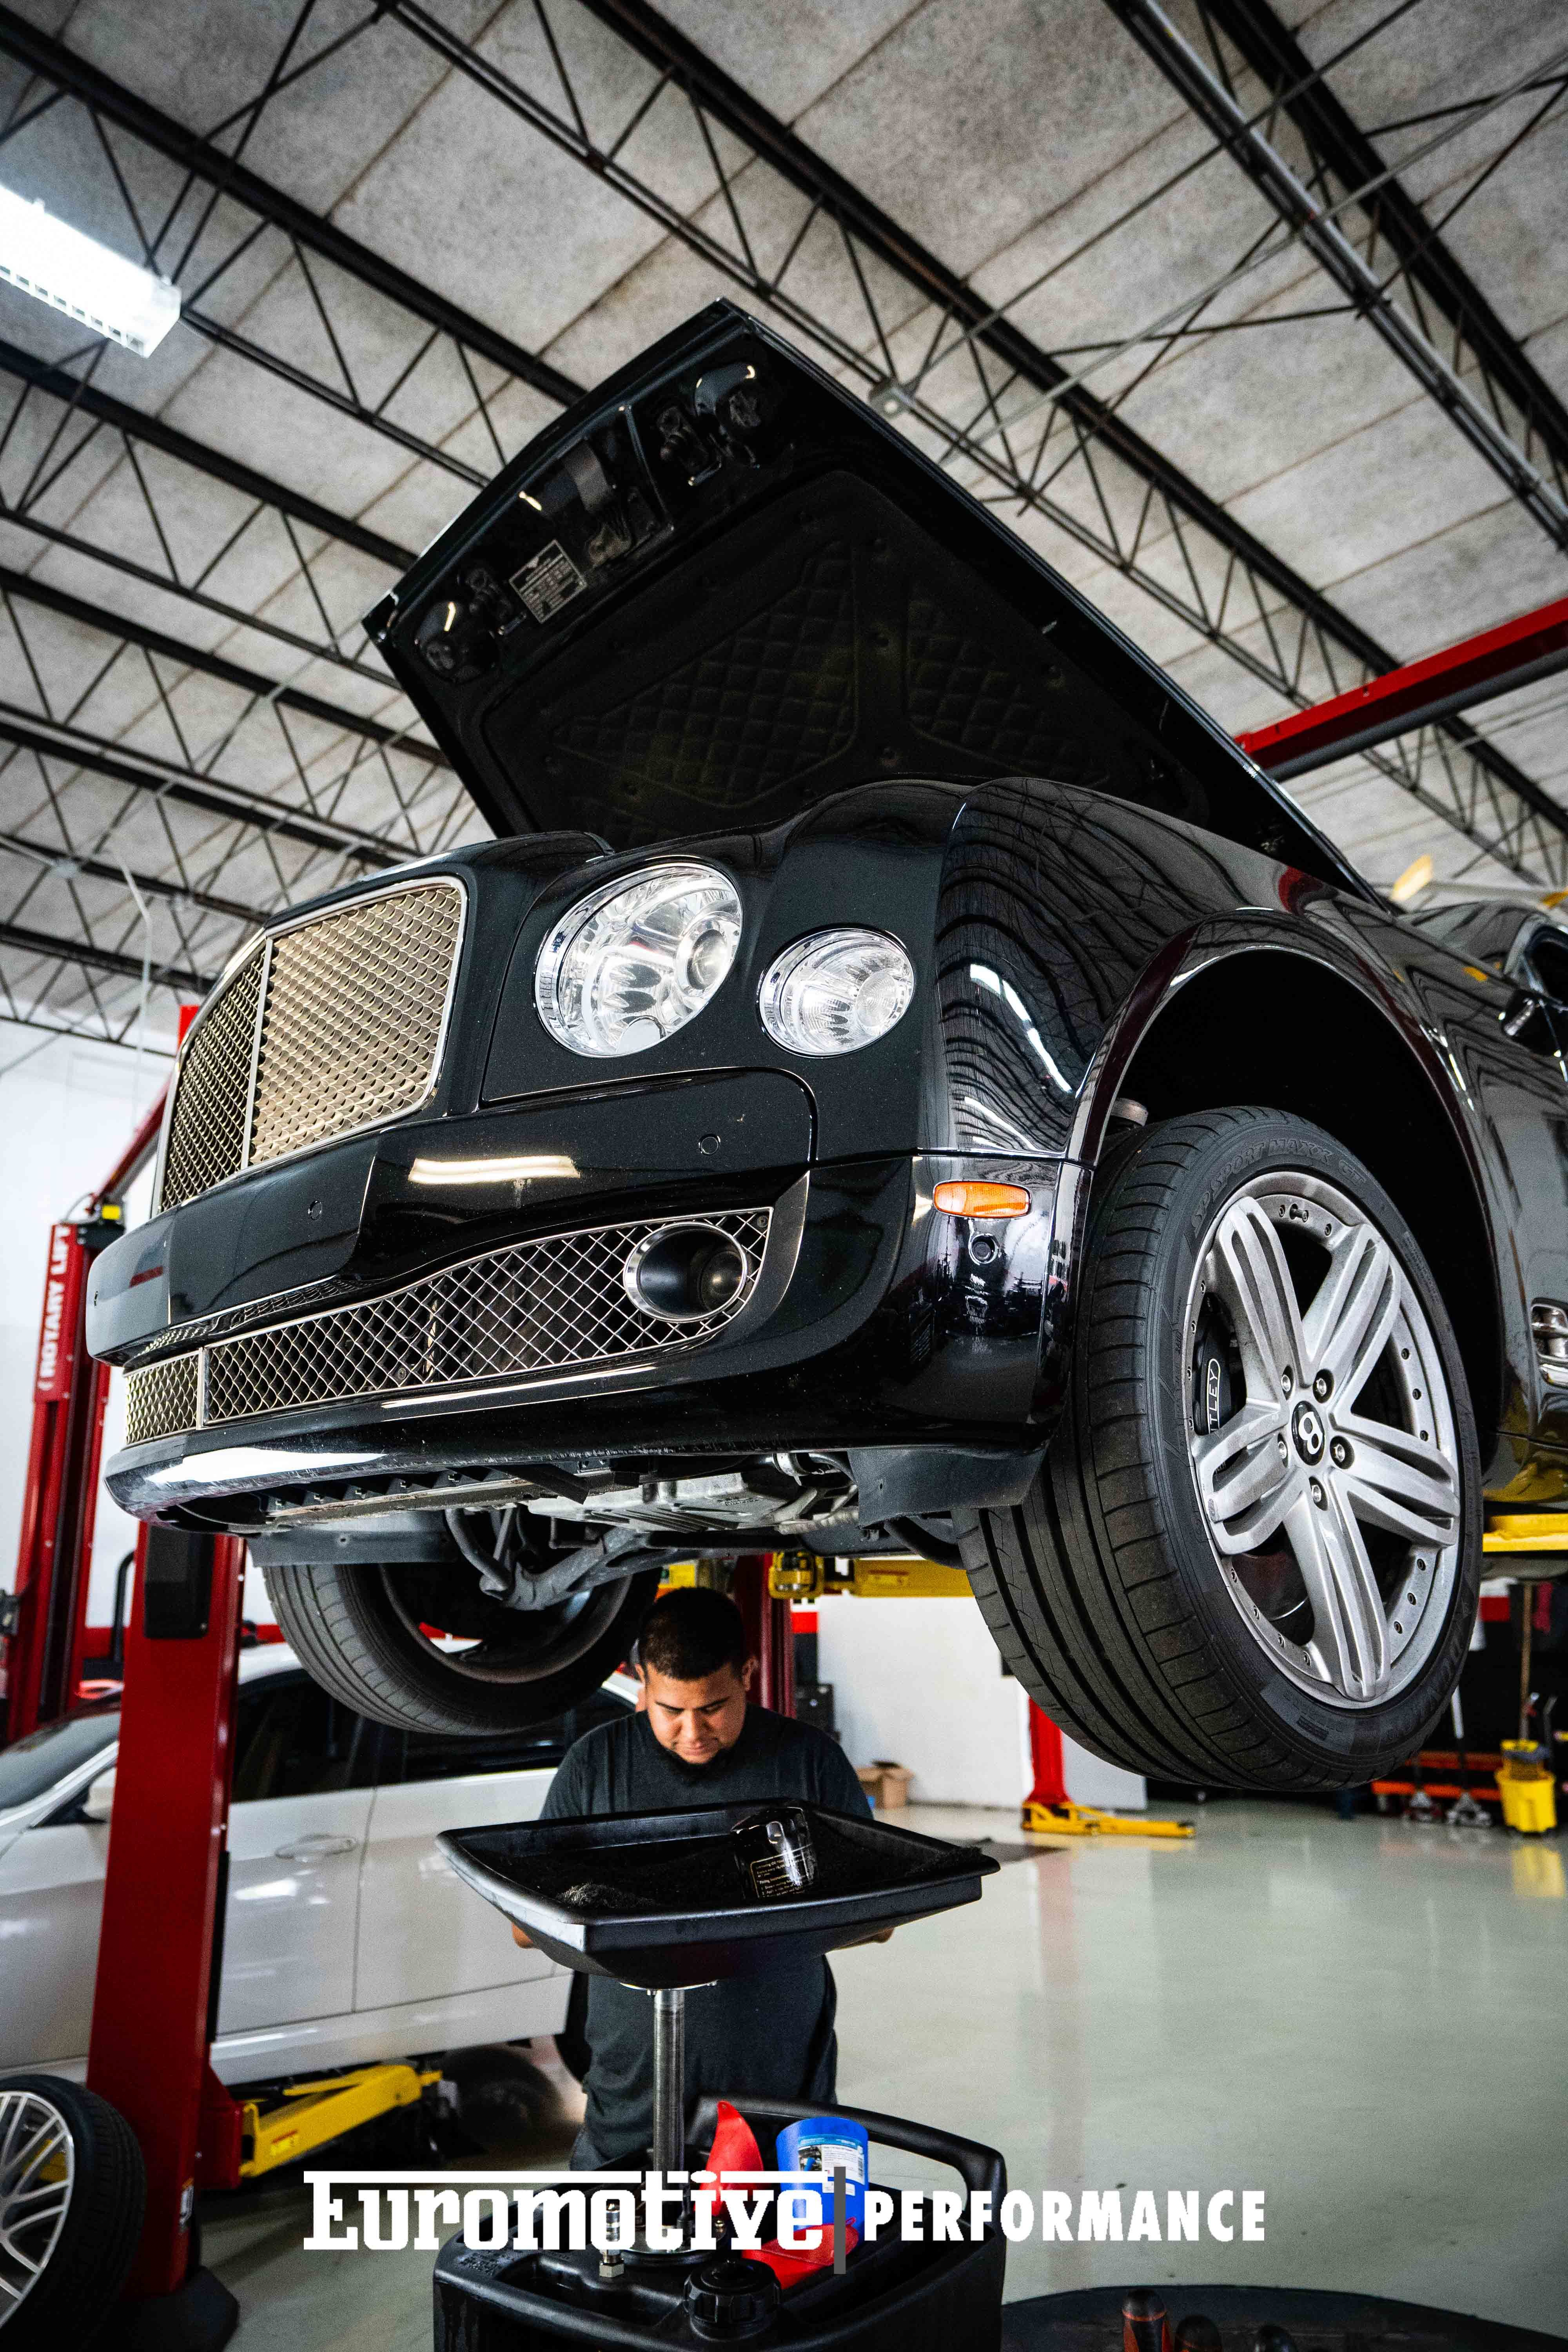 Bentley Maintenance In 2020 Car Repair Service Vehicle Inspection High End Cars